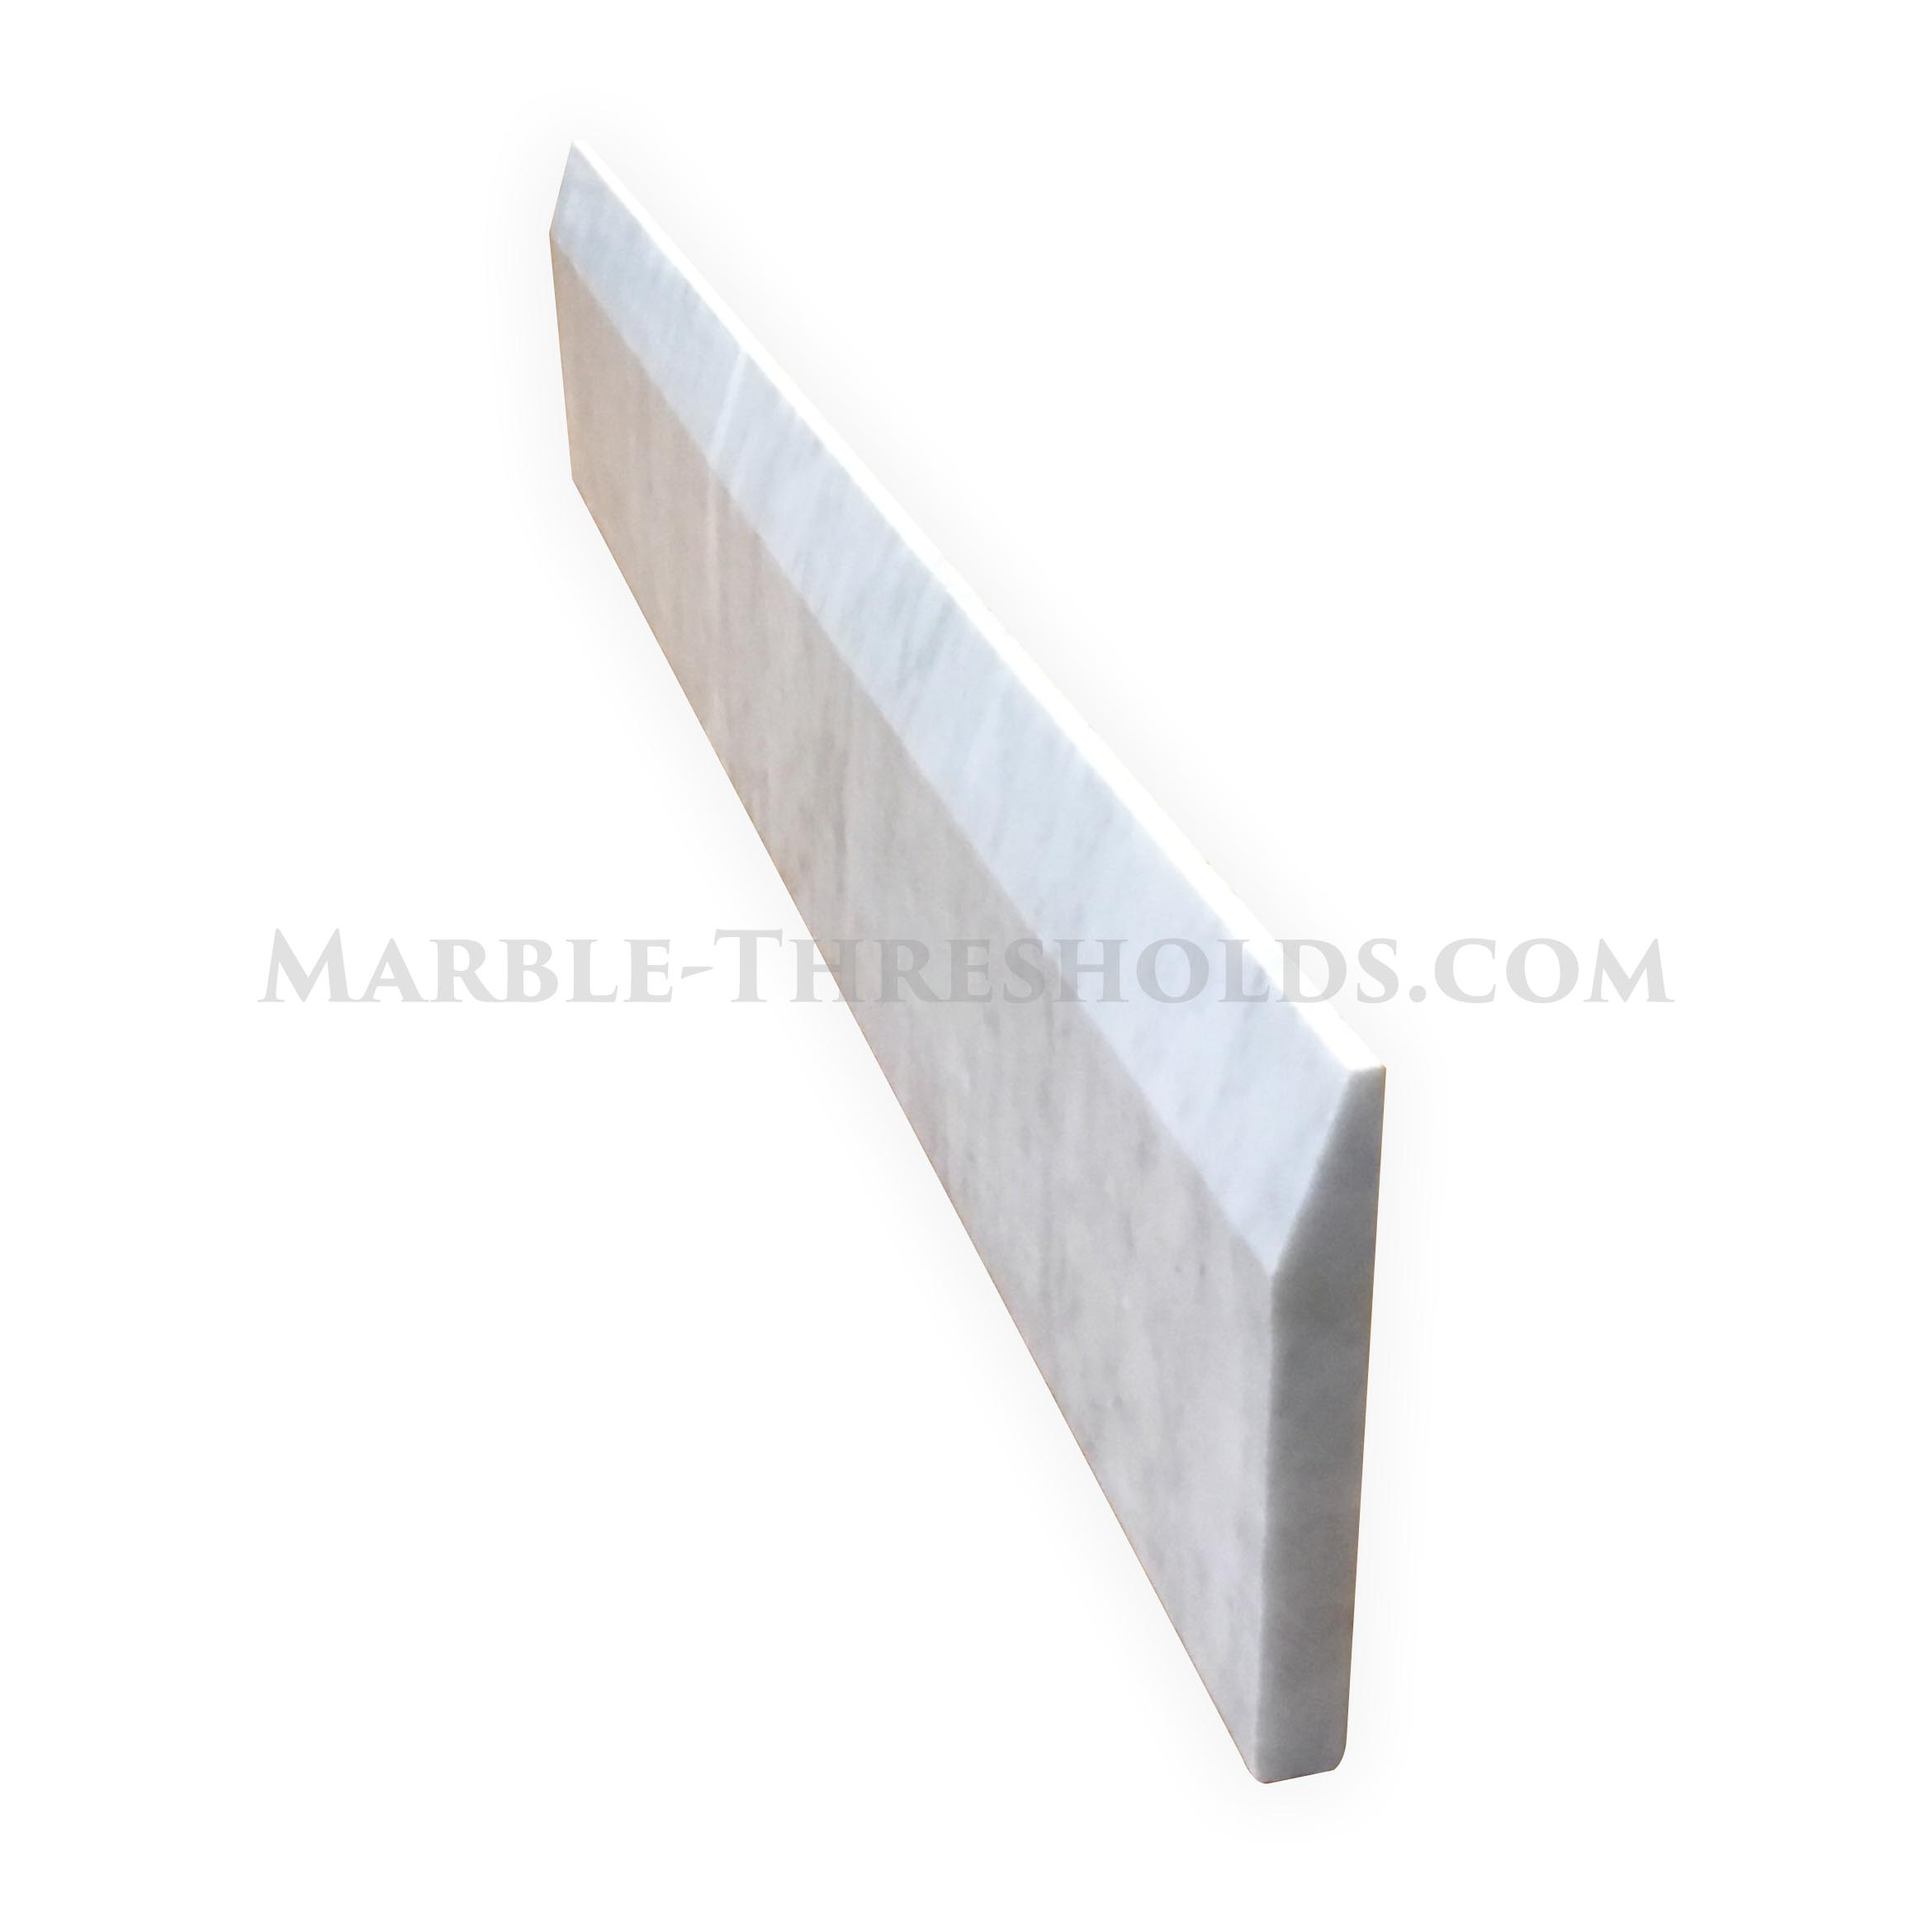 Carrara Threshold: Single Hollywood Door Threshold